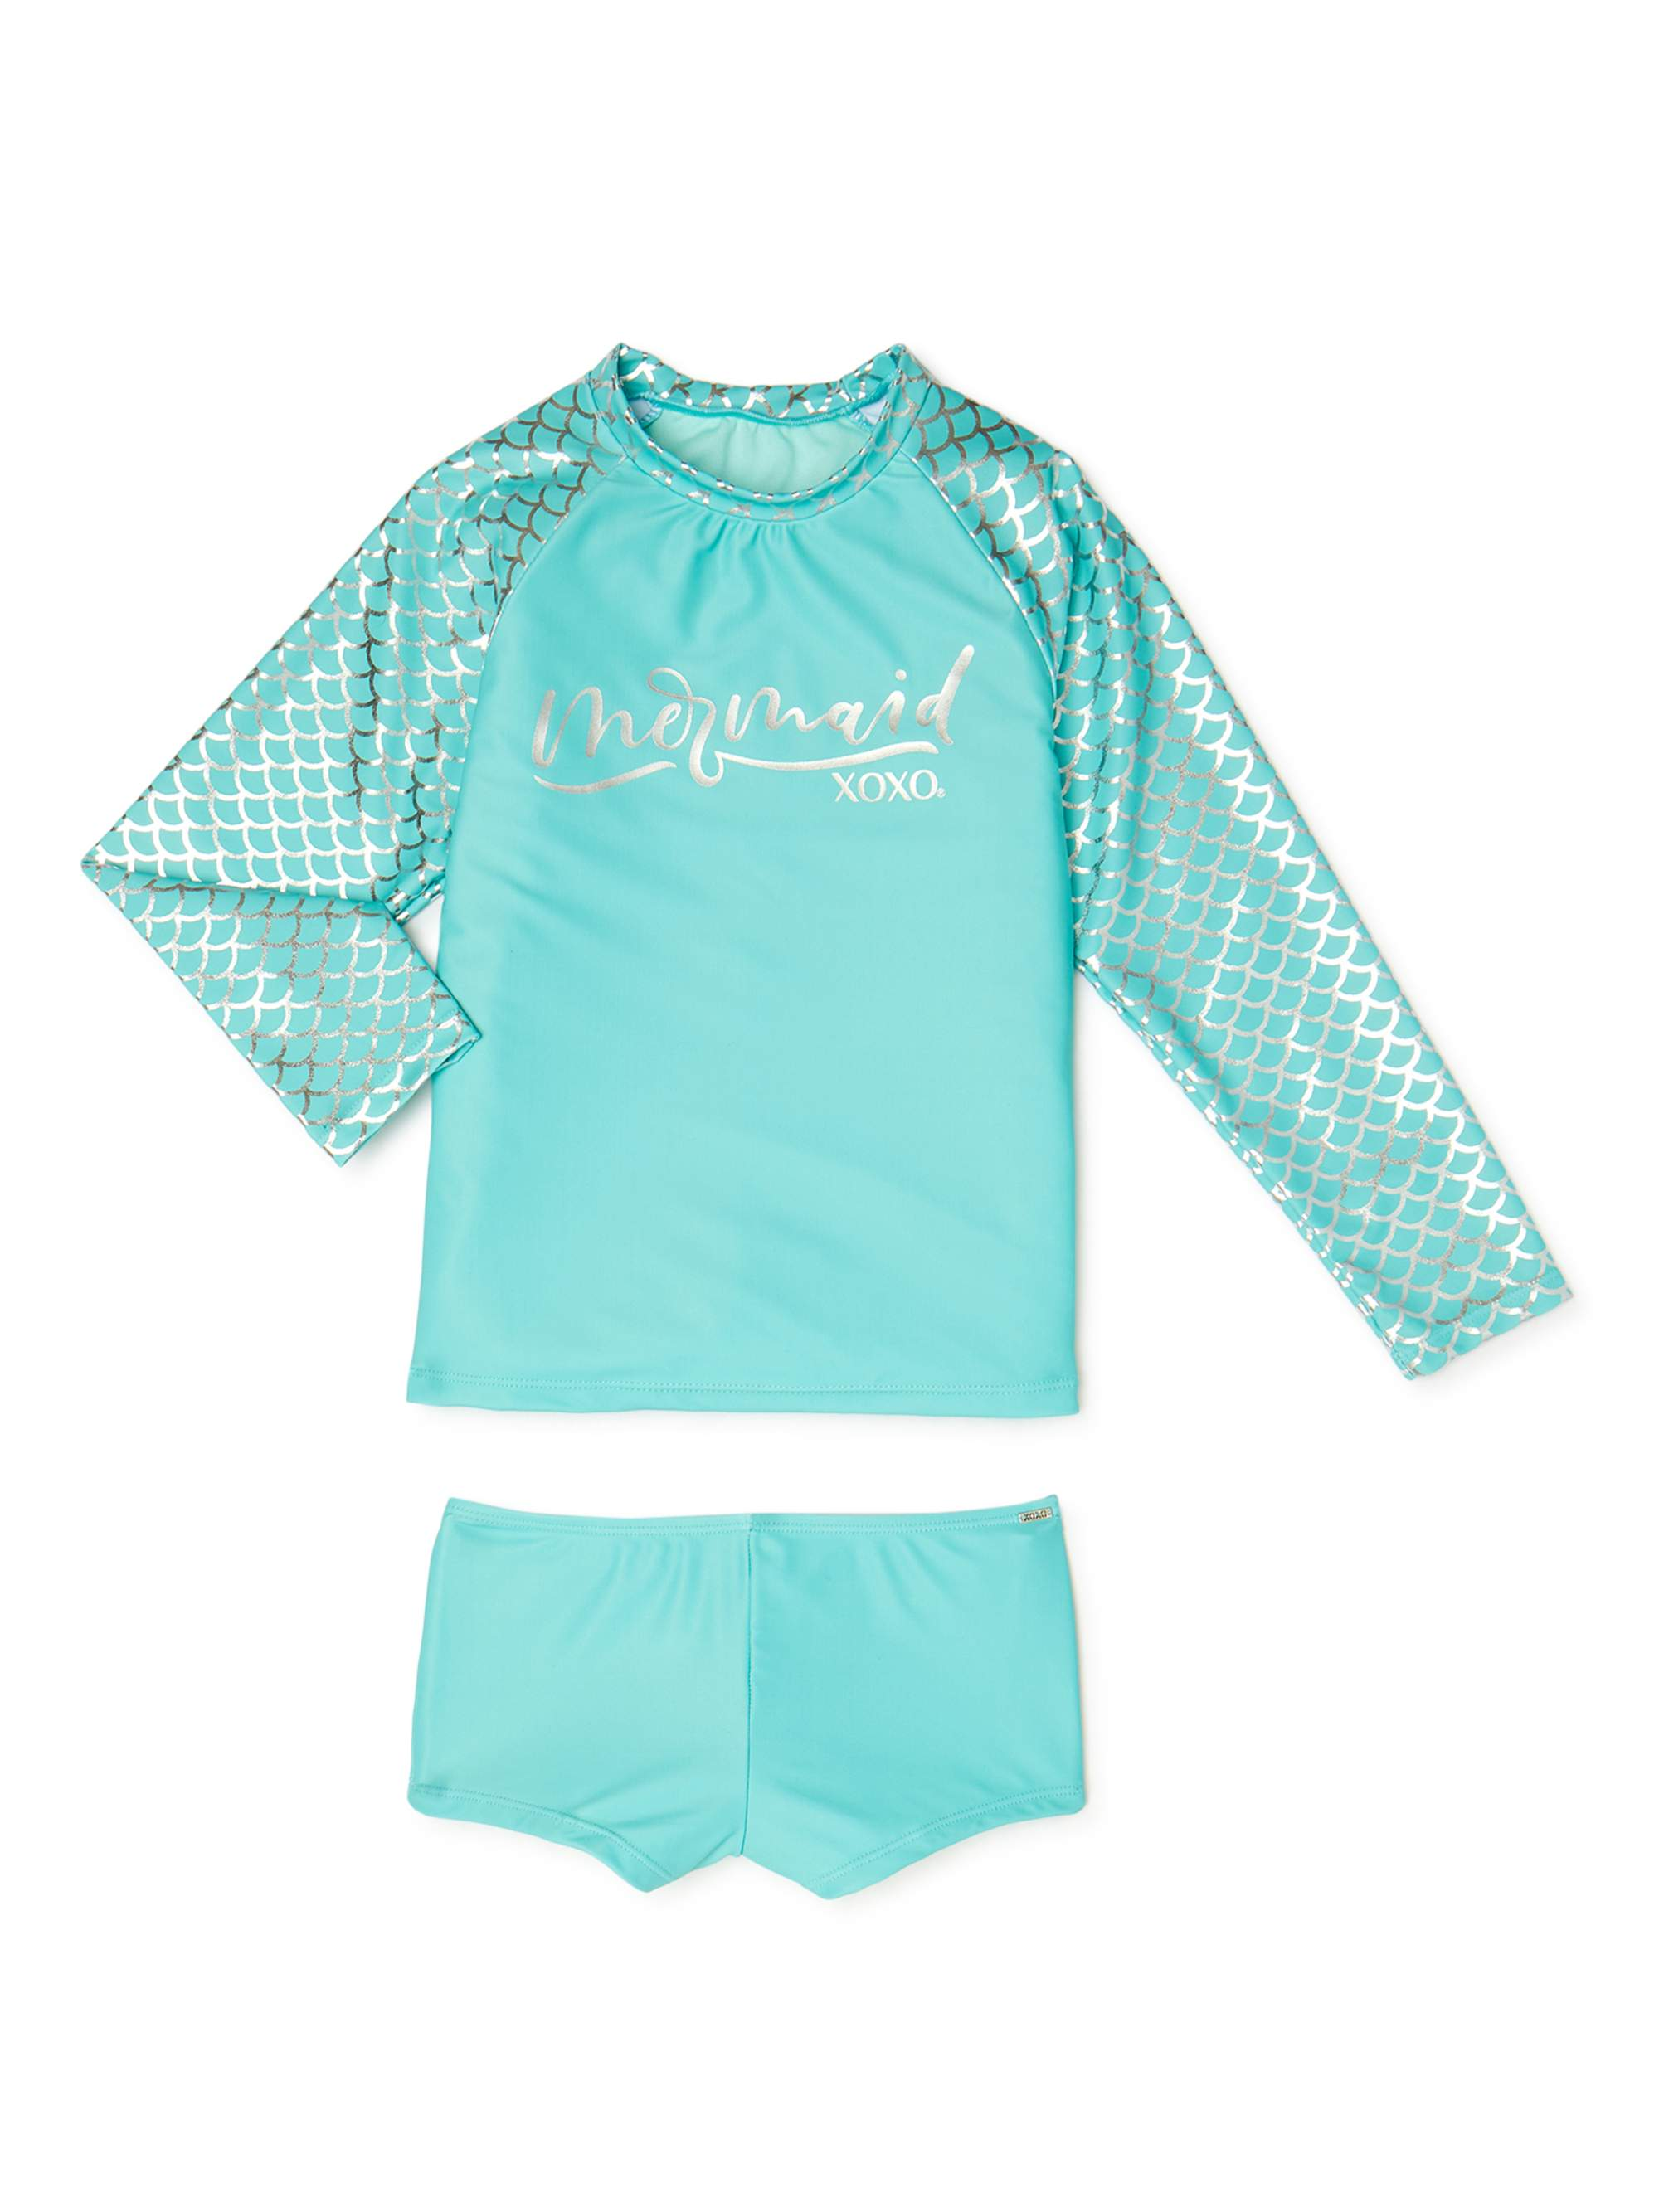 KIKO /& MAX Baby Girls Rashguard and Diaper Cover Swim Set L Mint Fish